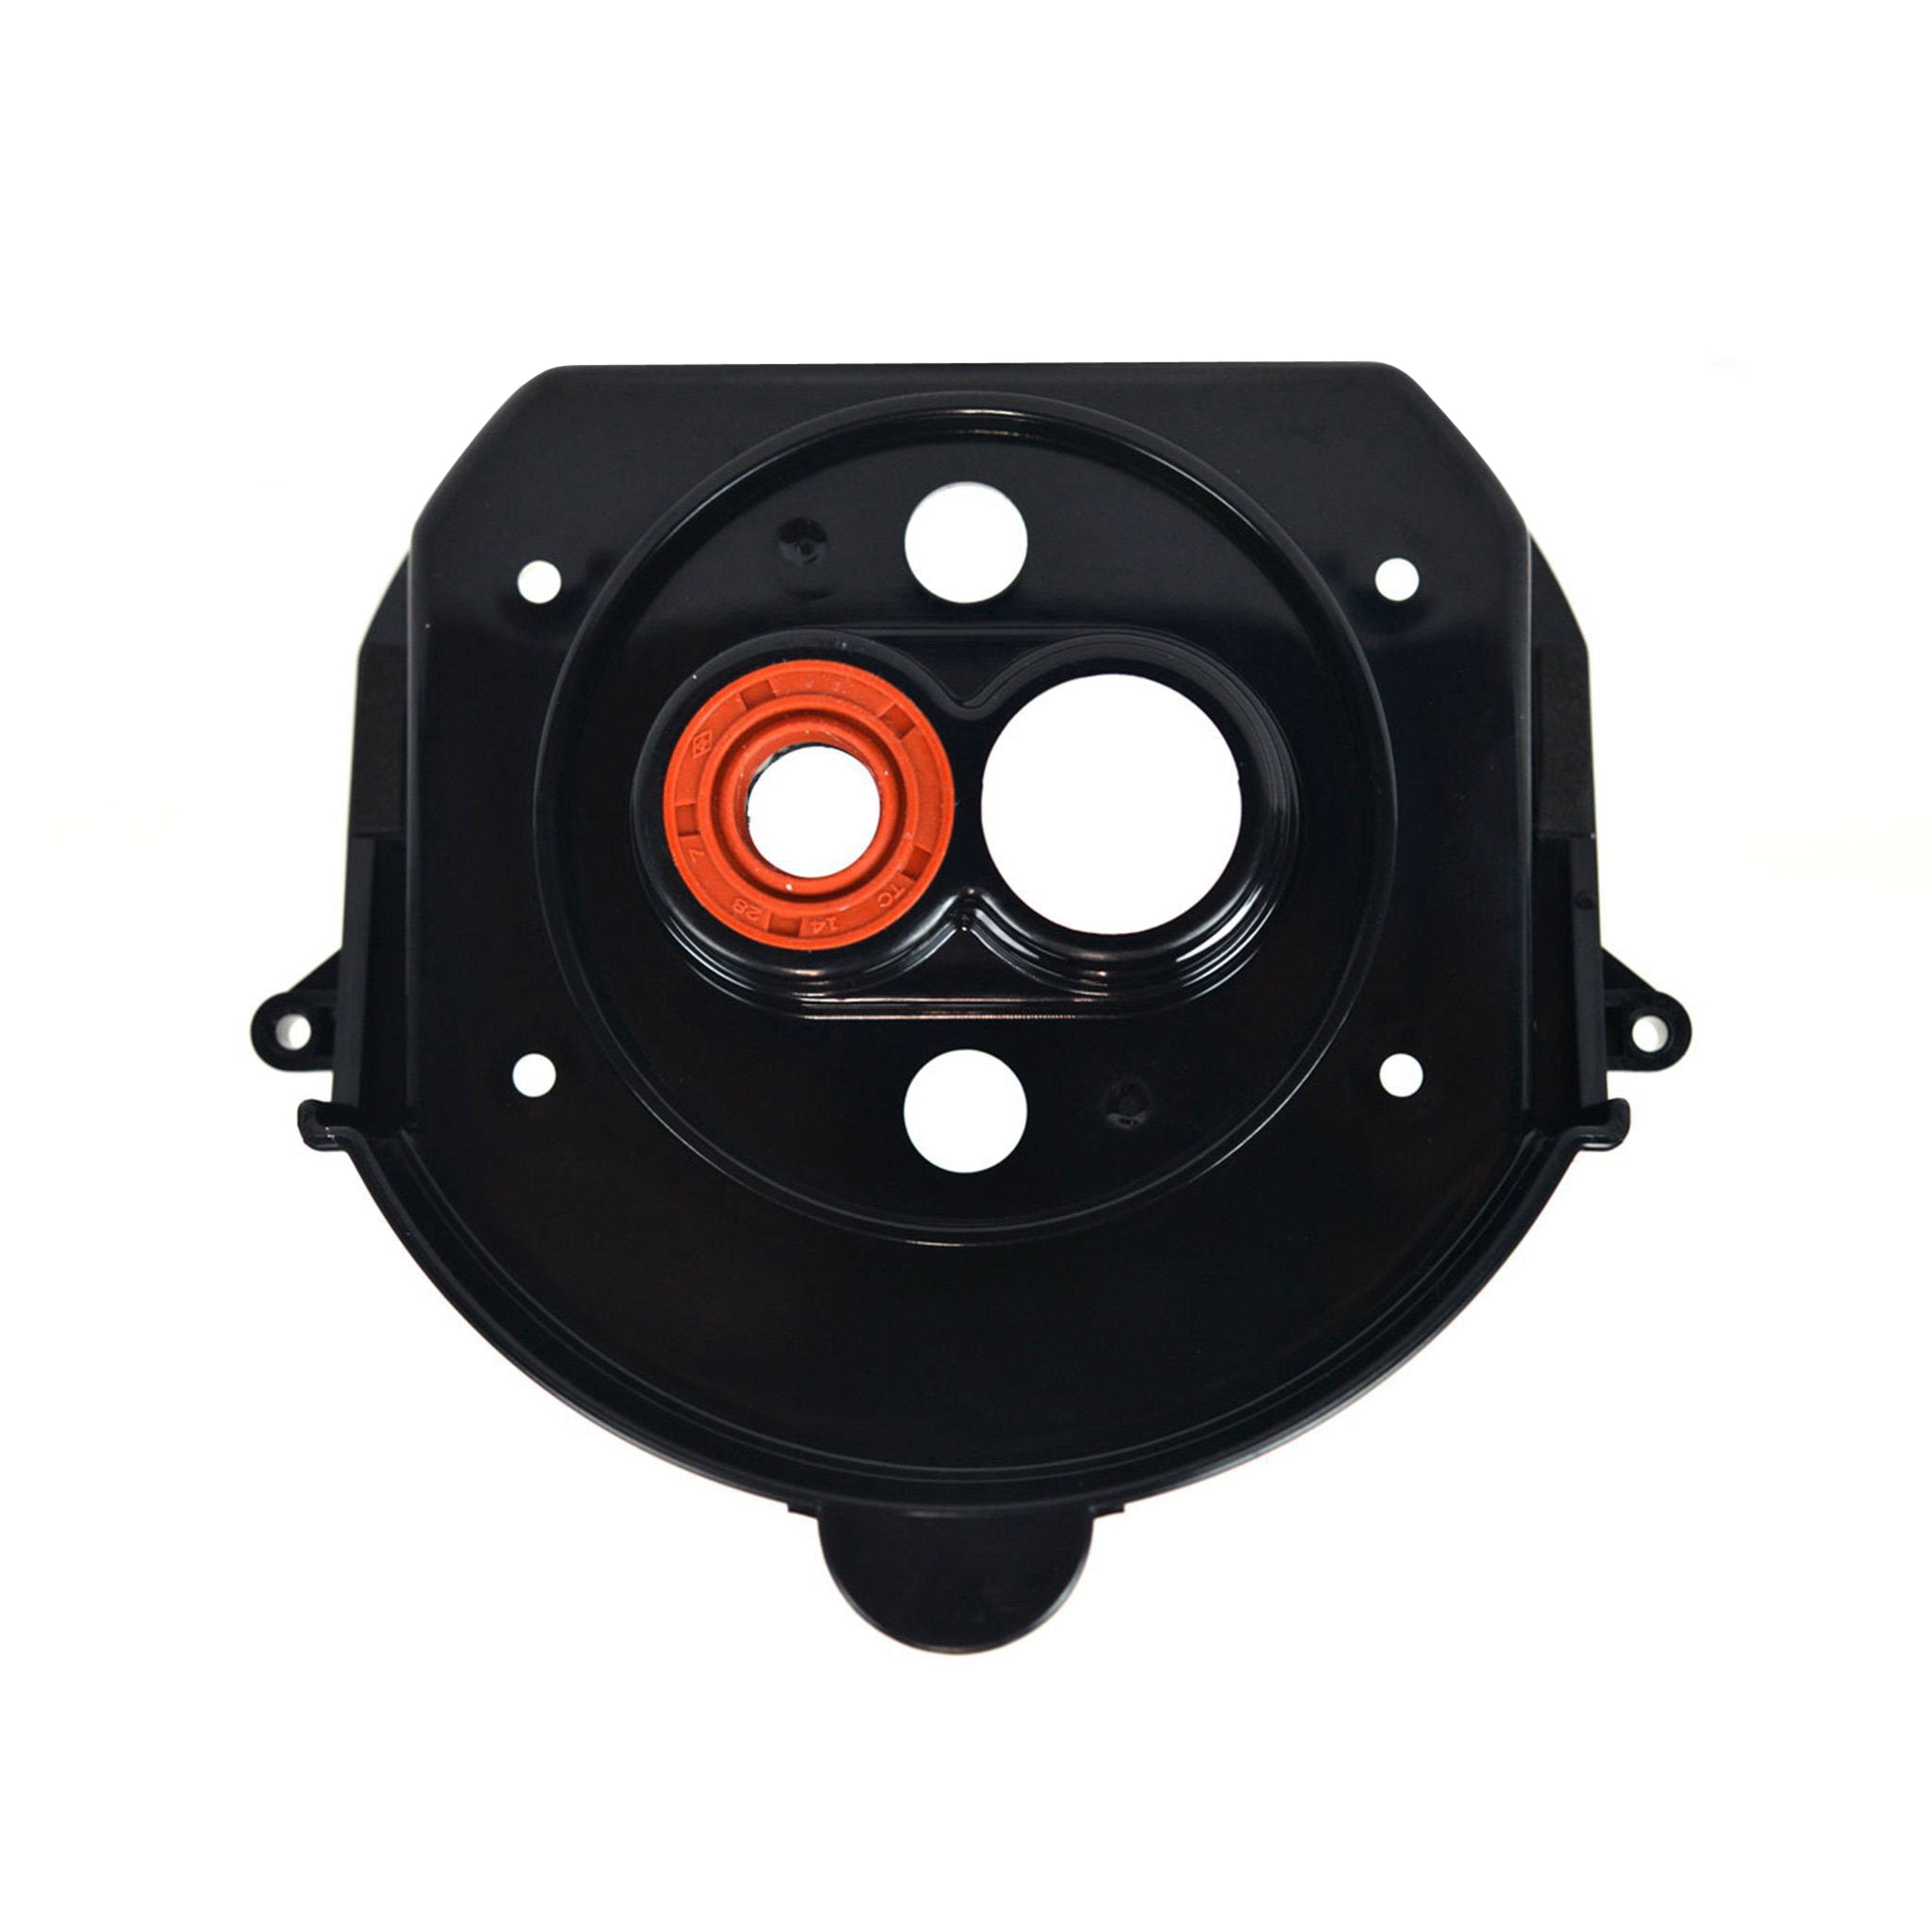 Greenstar® Elite Black Plastic Speed Reducer Cover